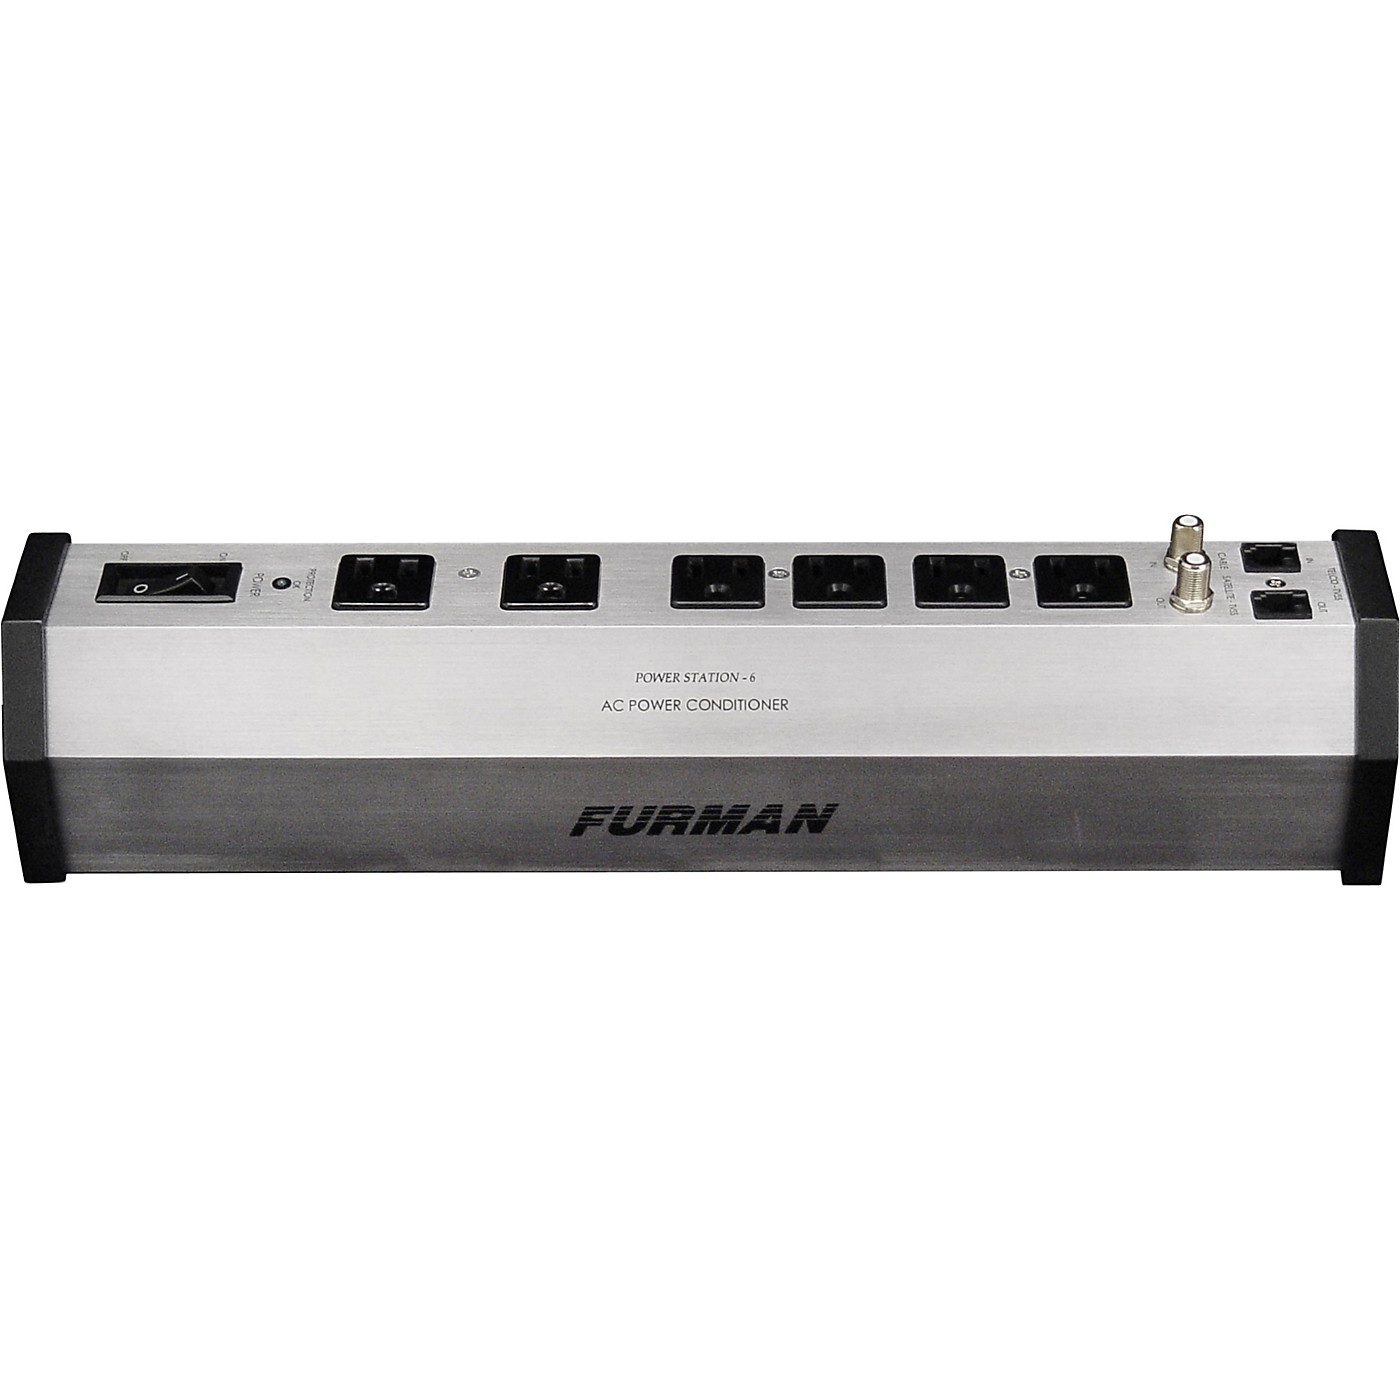 Furman PST-6 Power Station Series AC Power Conditioner thumbnail